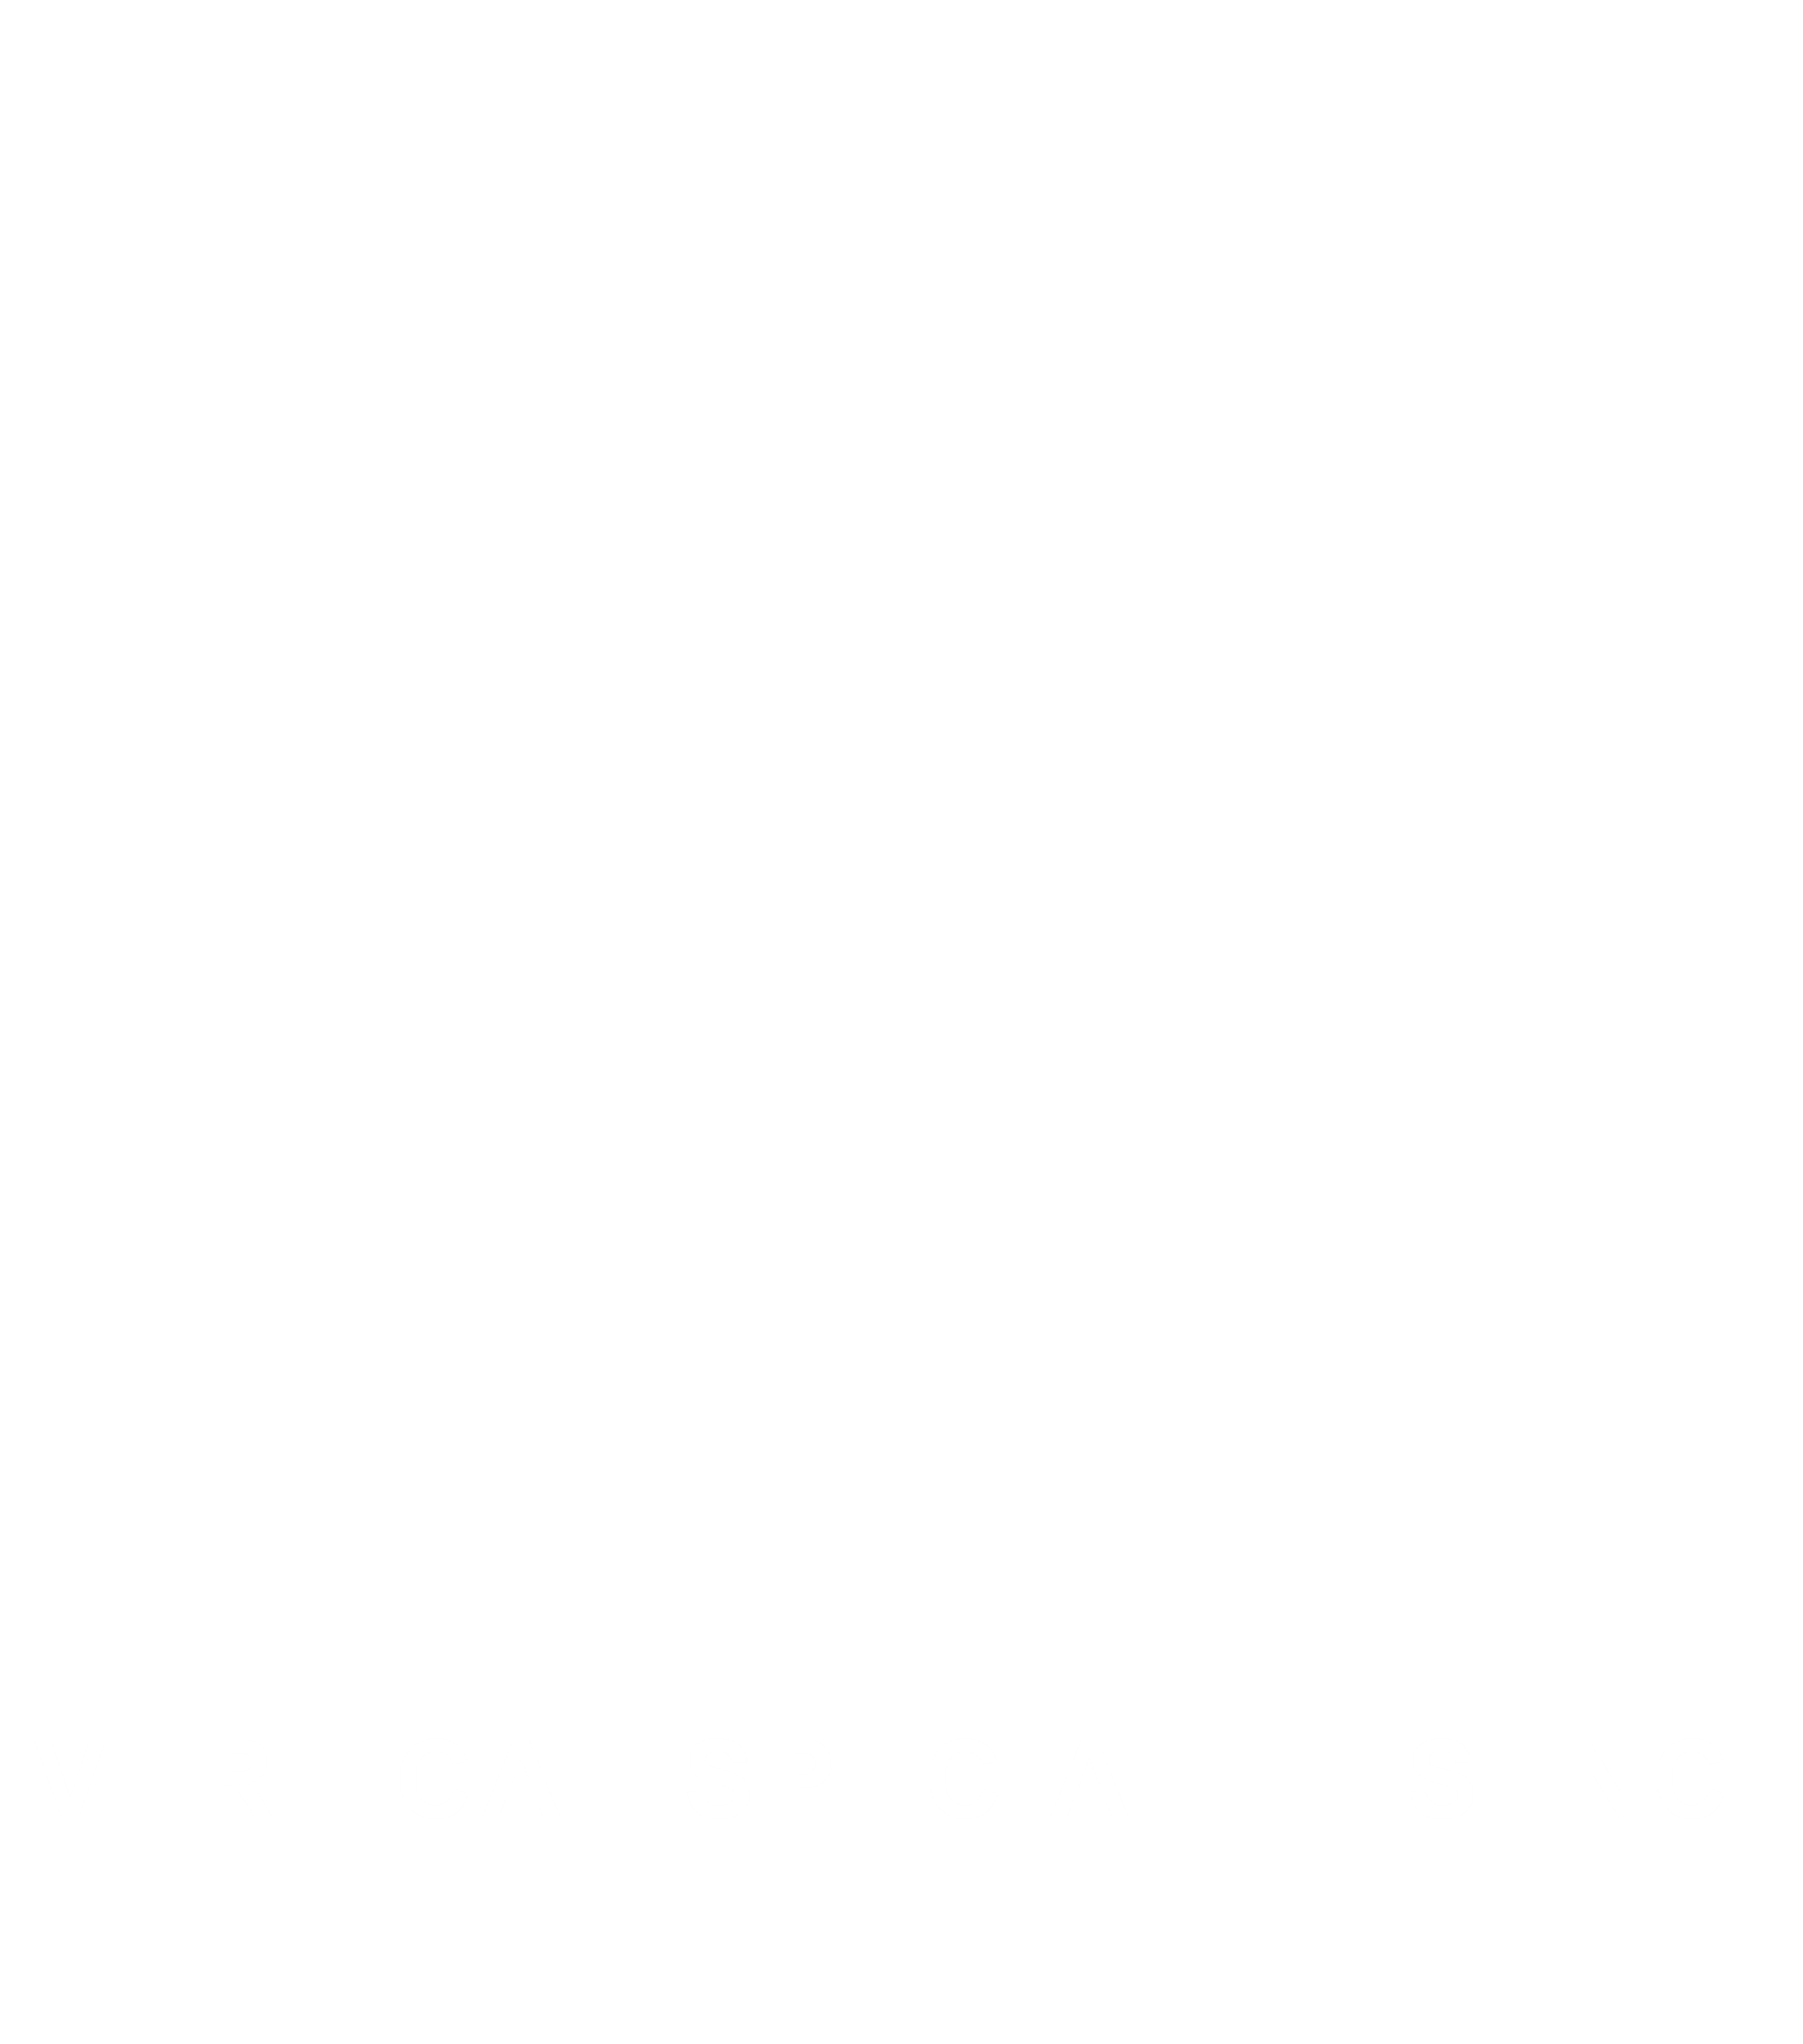 VERTICAL SPECIALTIES INC.